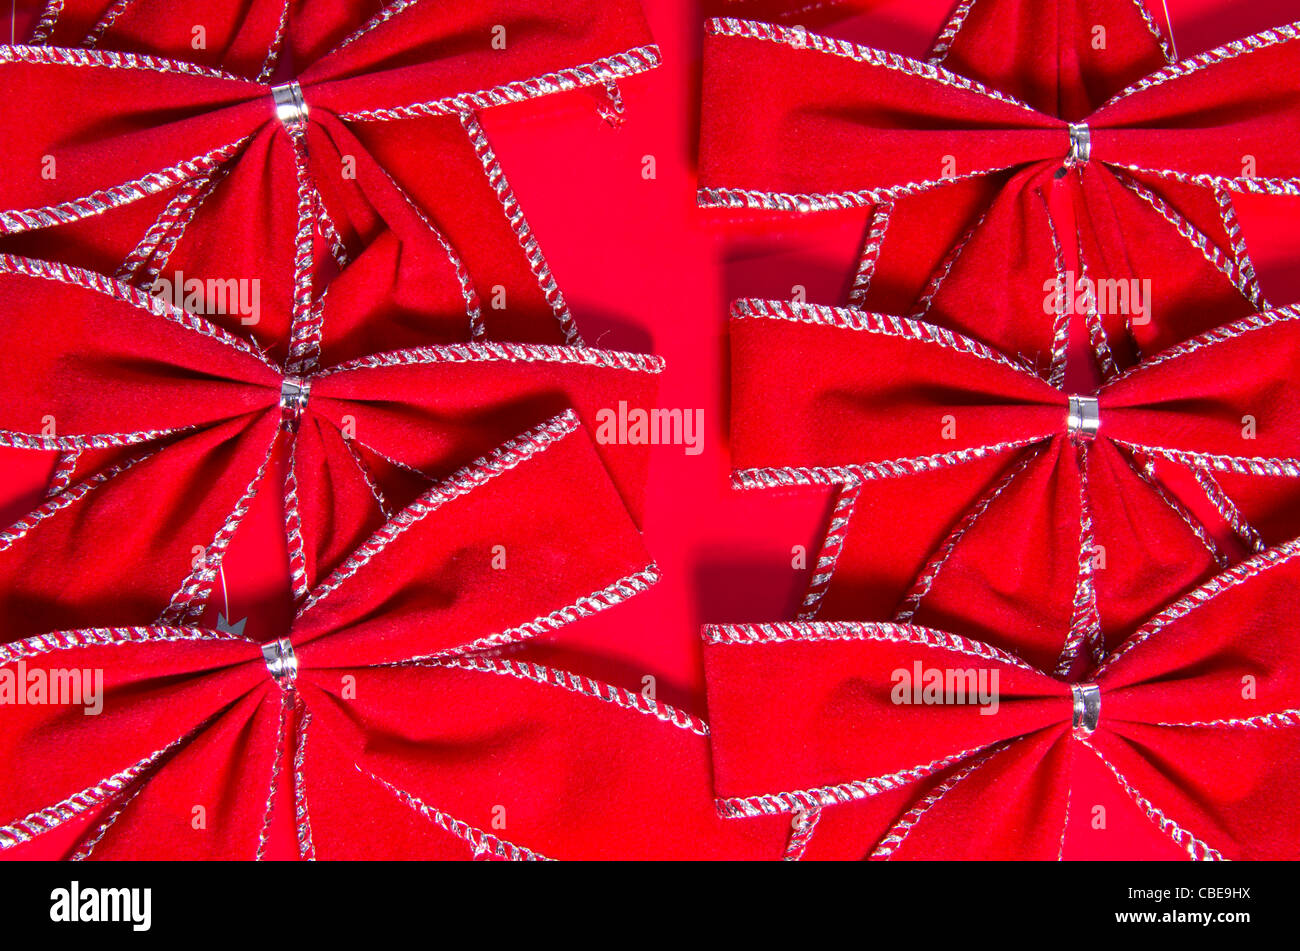 Red bows on a red background - Stock Image